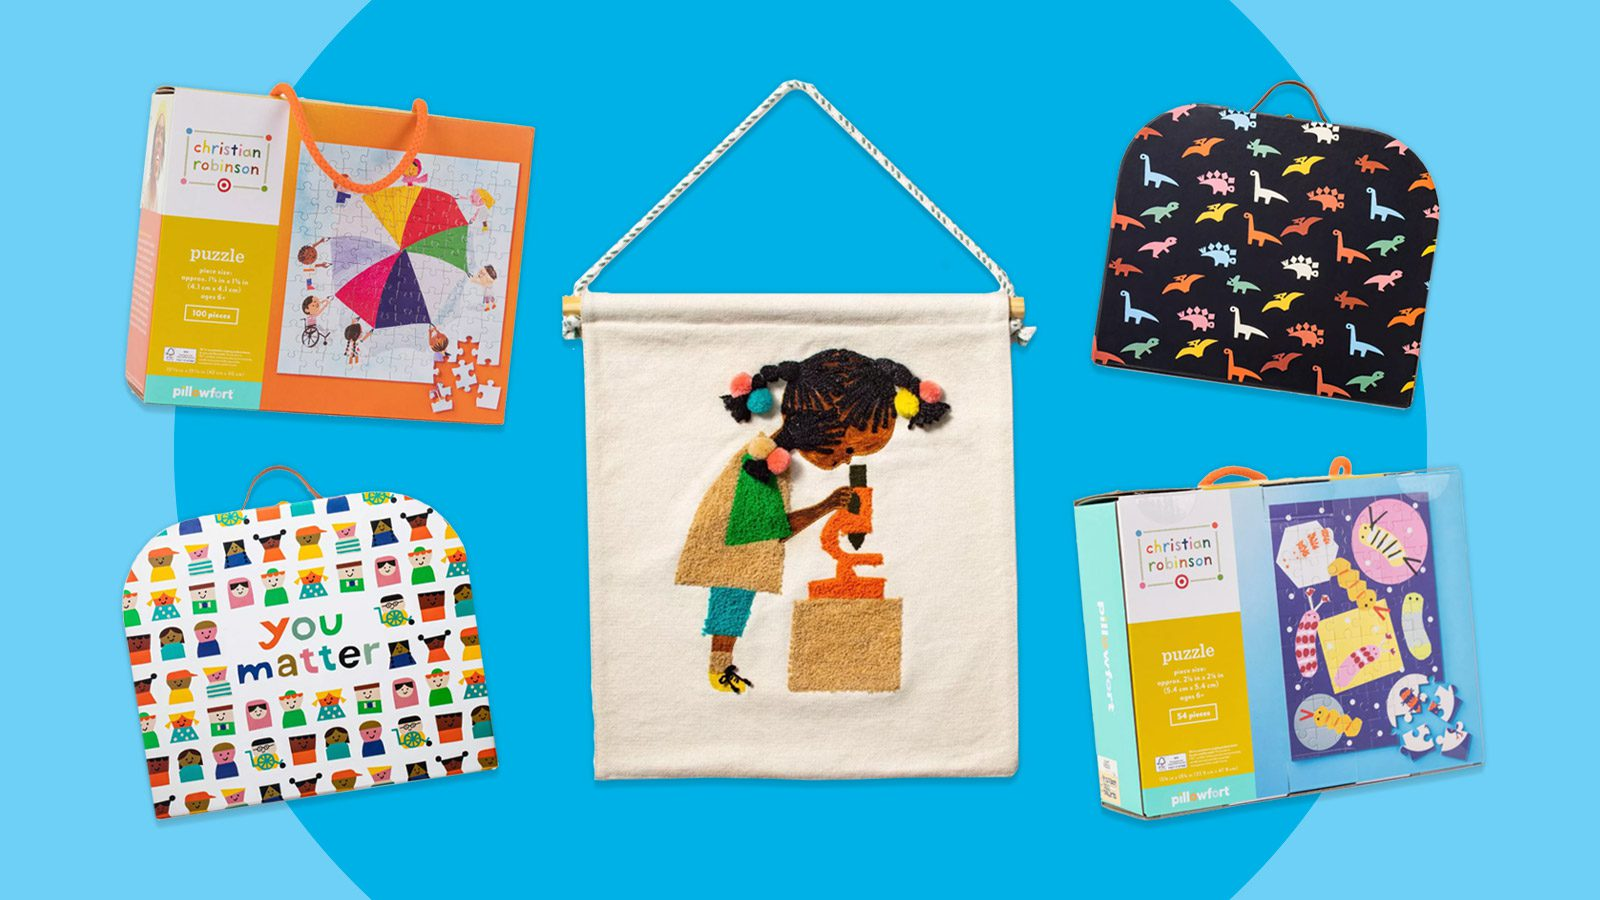 Target Just Dropped New Christian Robinson Products and We Want Them All